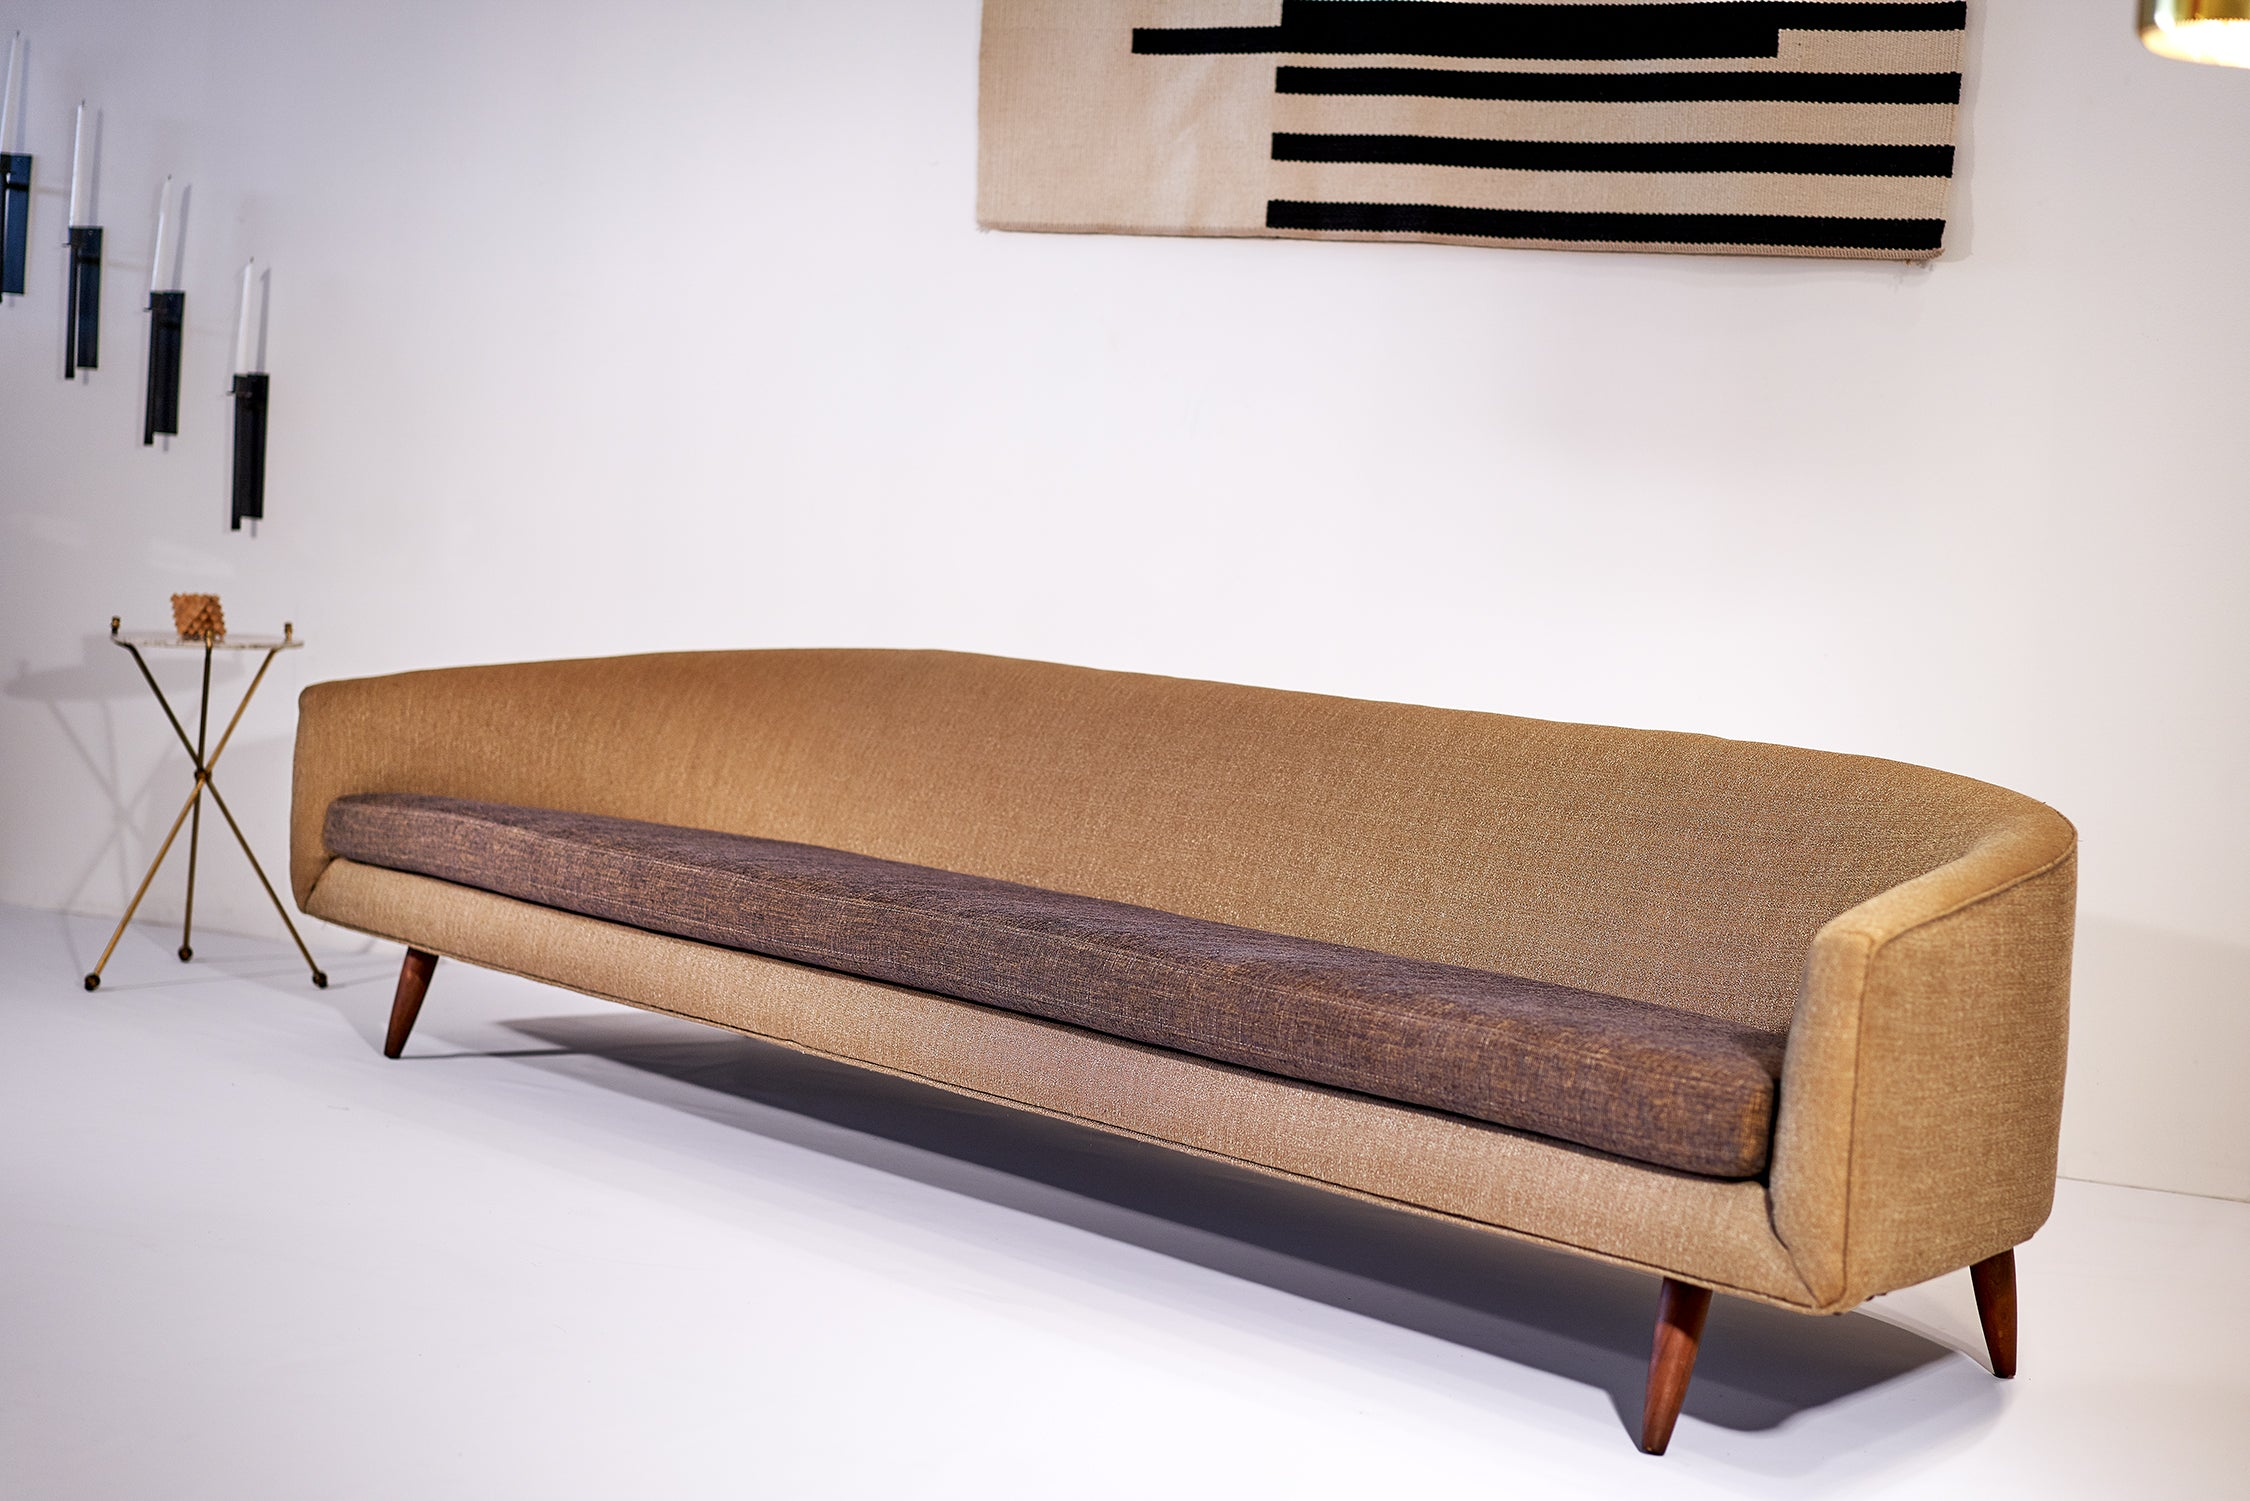 1950s Adrian Pearsall for Craft Associates Cloud Sofa